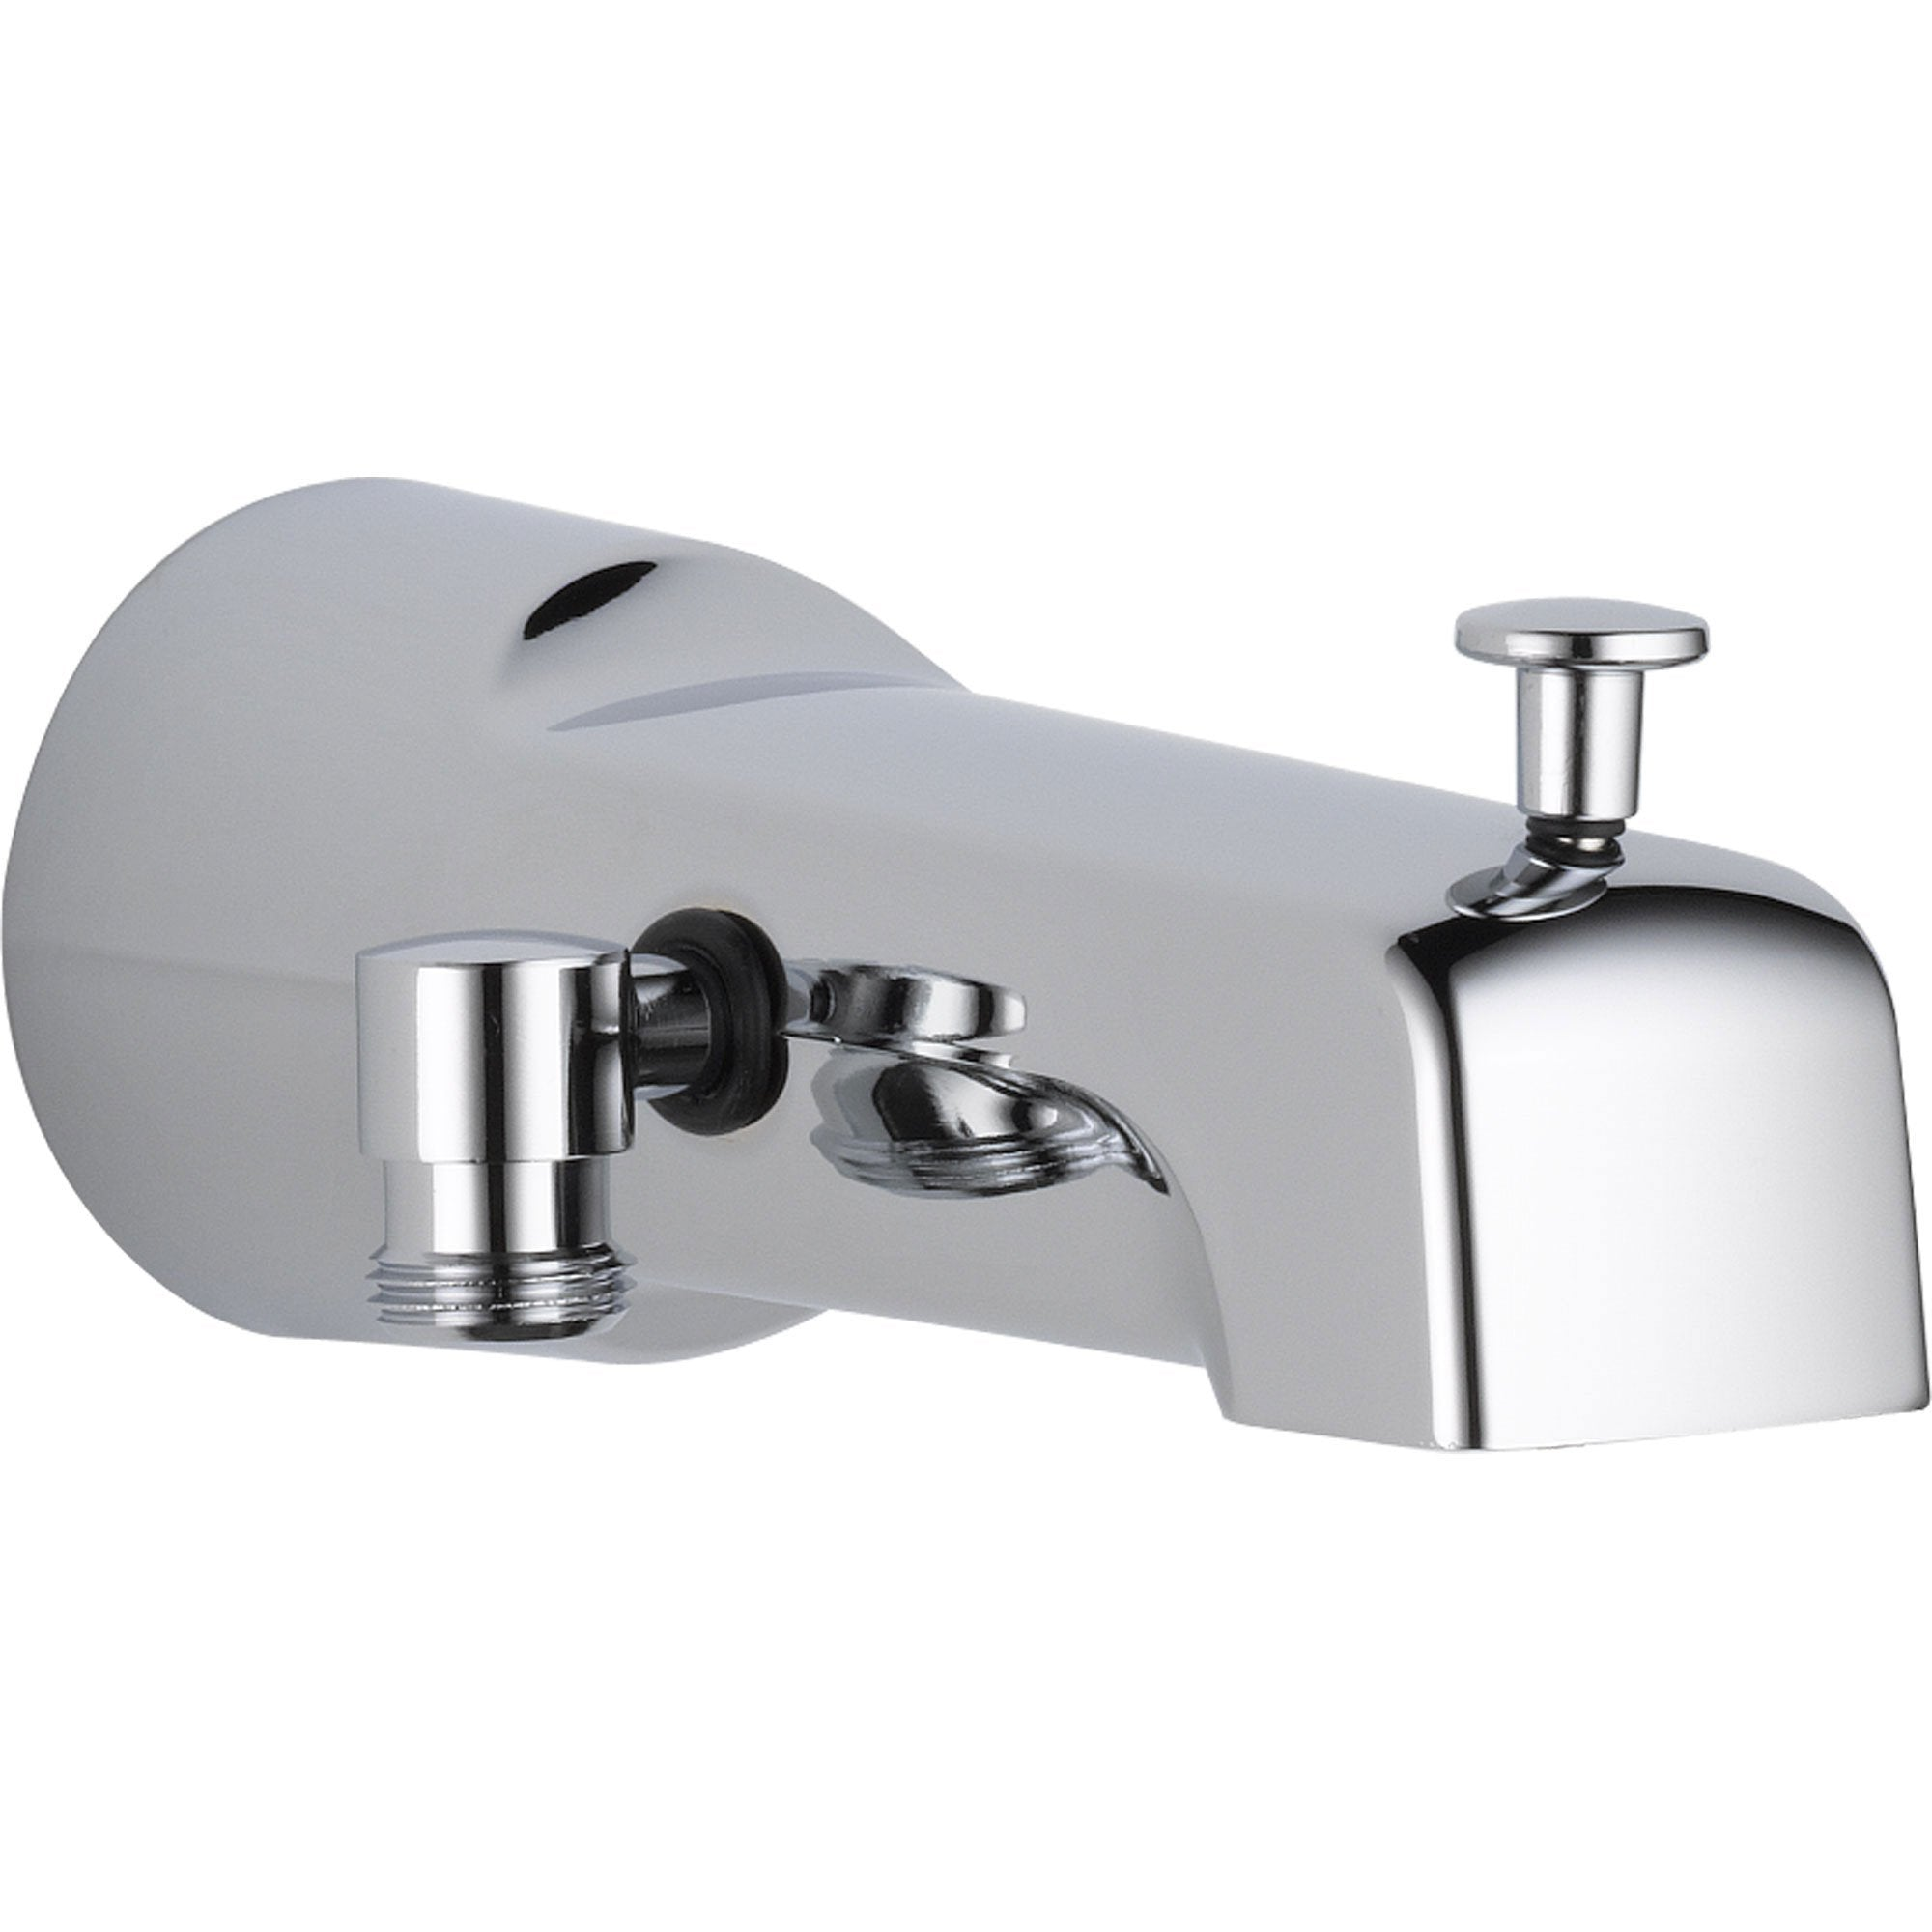 Delta 7.2 In. Long Pull-up Diverter Tub Spout in Chrome 561295